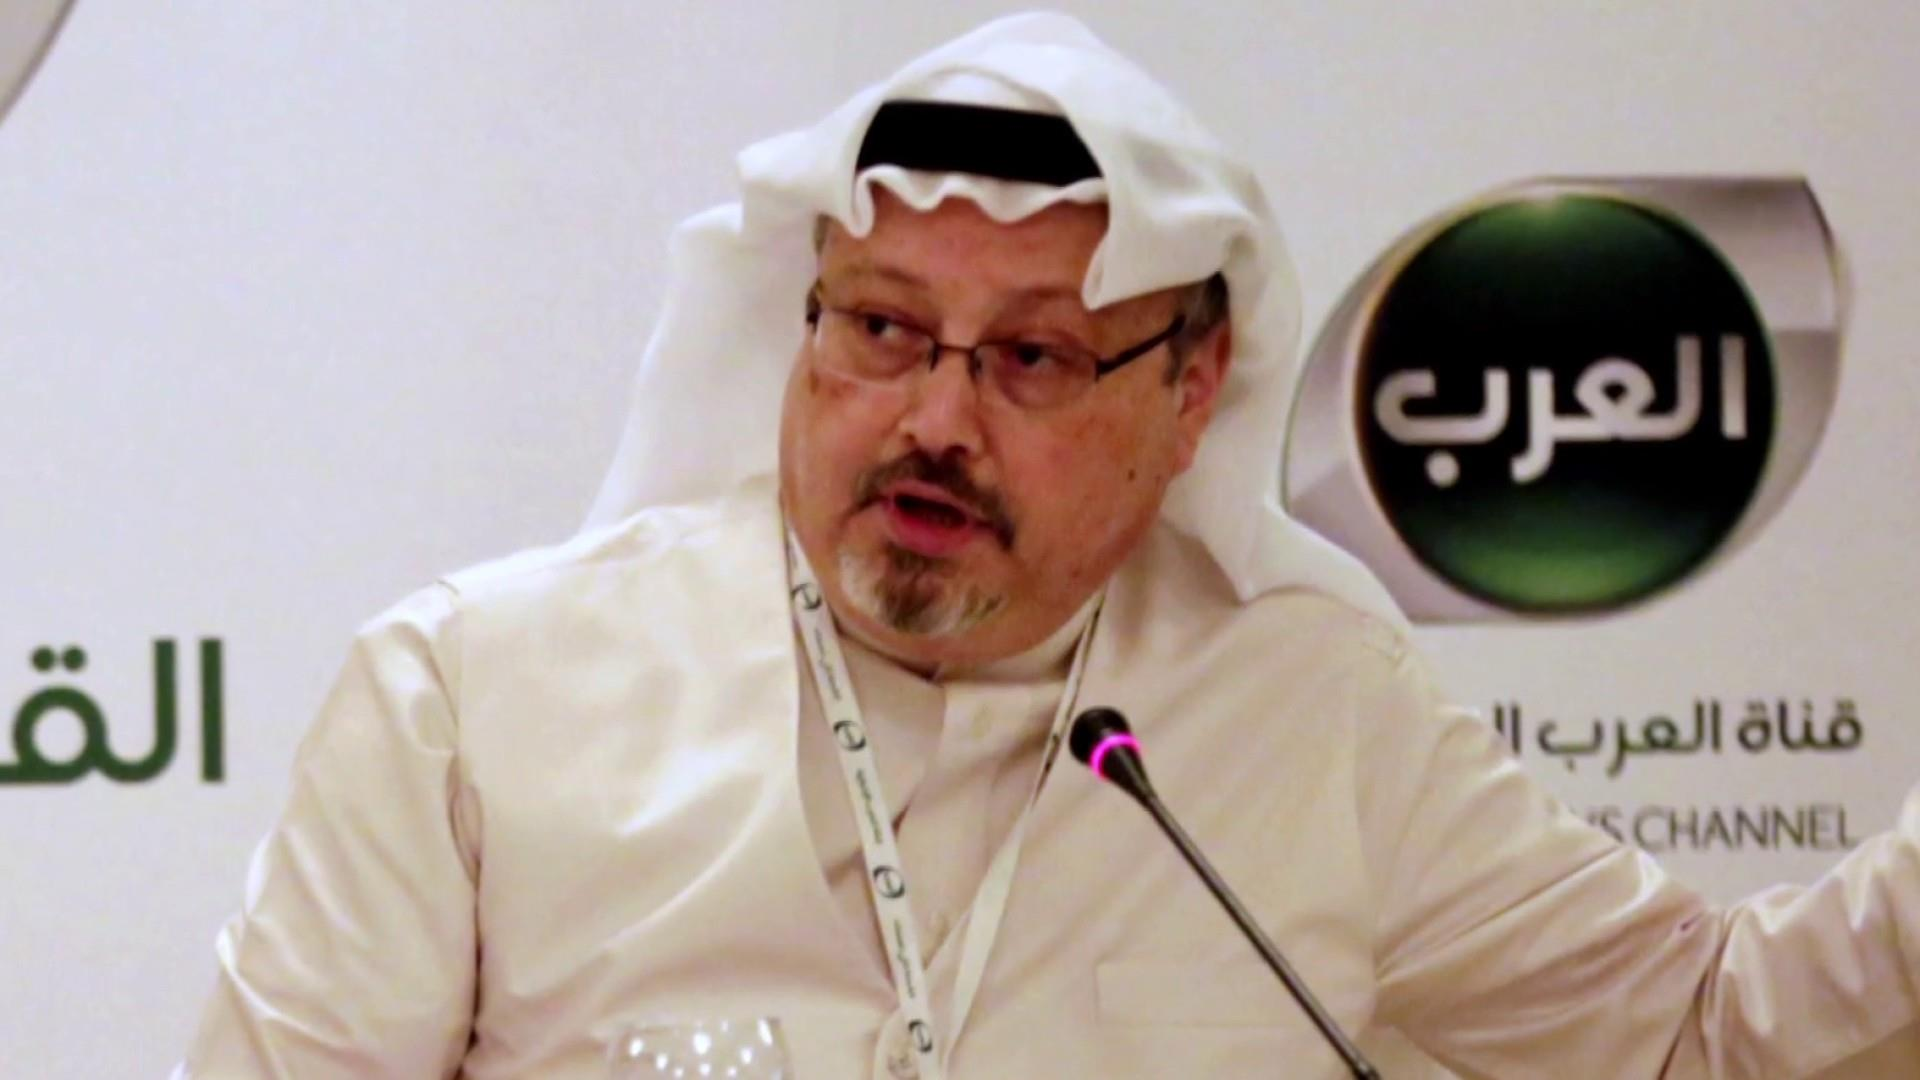 New report reveals harrowing details of Jamal Khashoggi's death